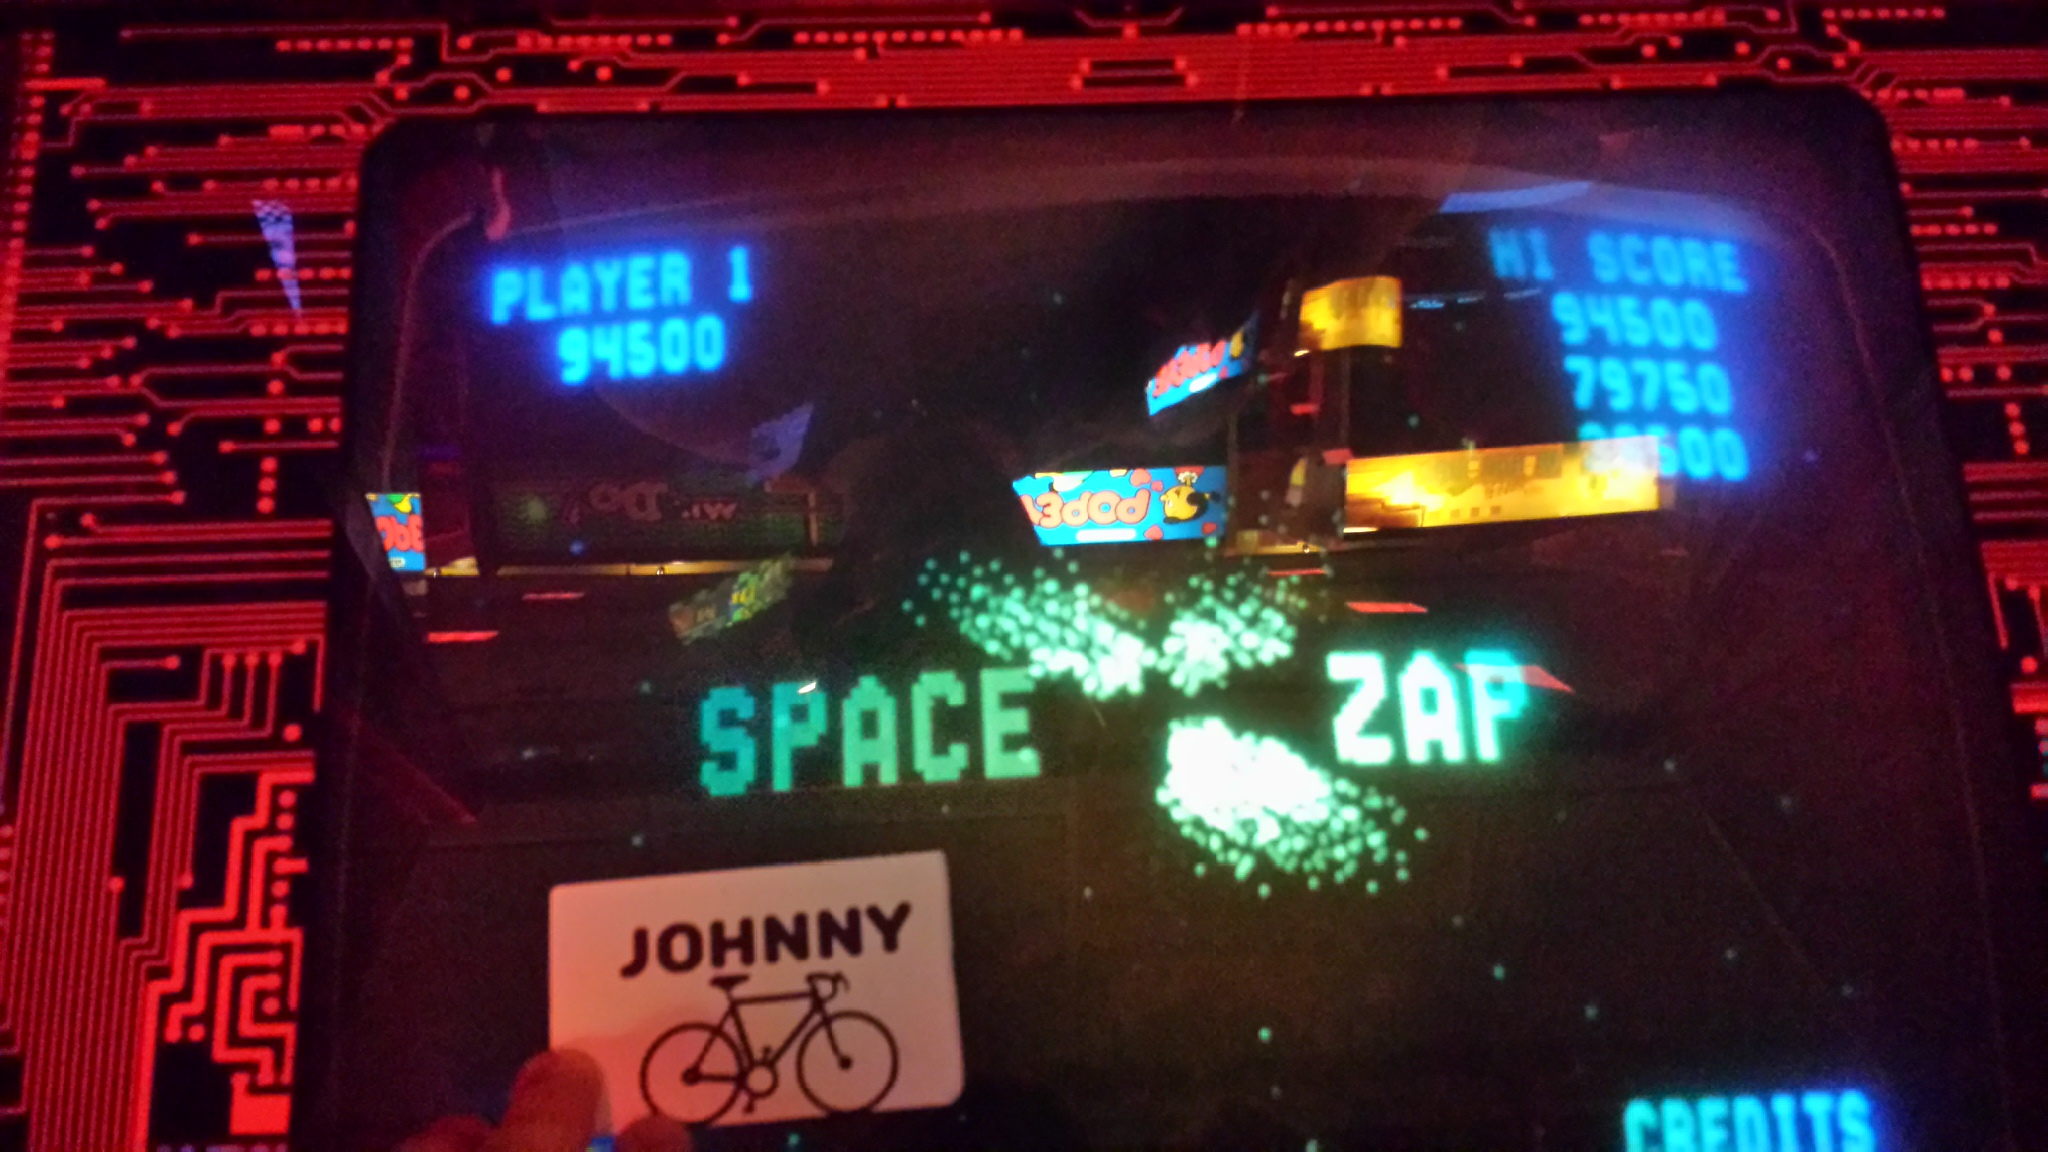 Space Zap 94,500 points